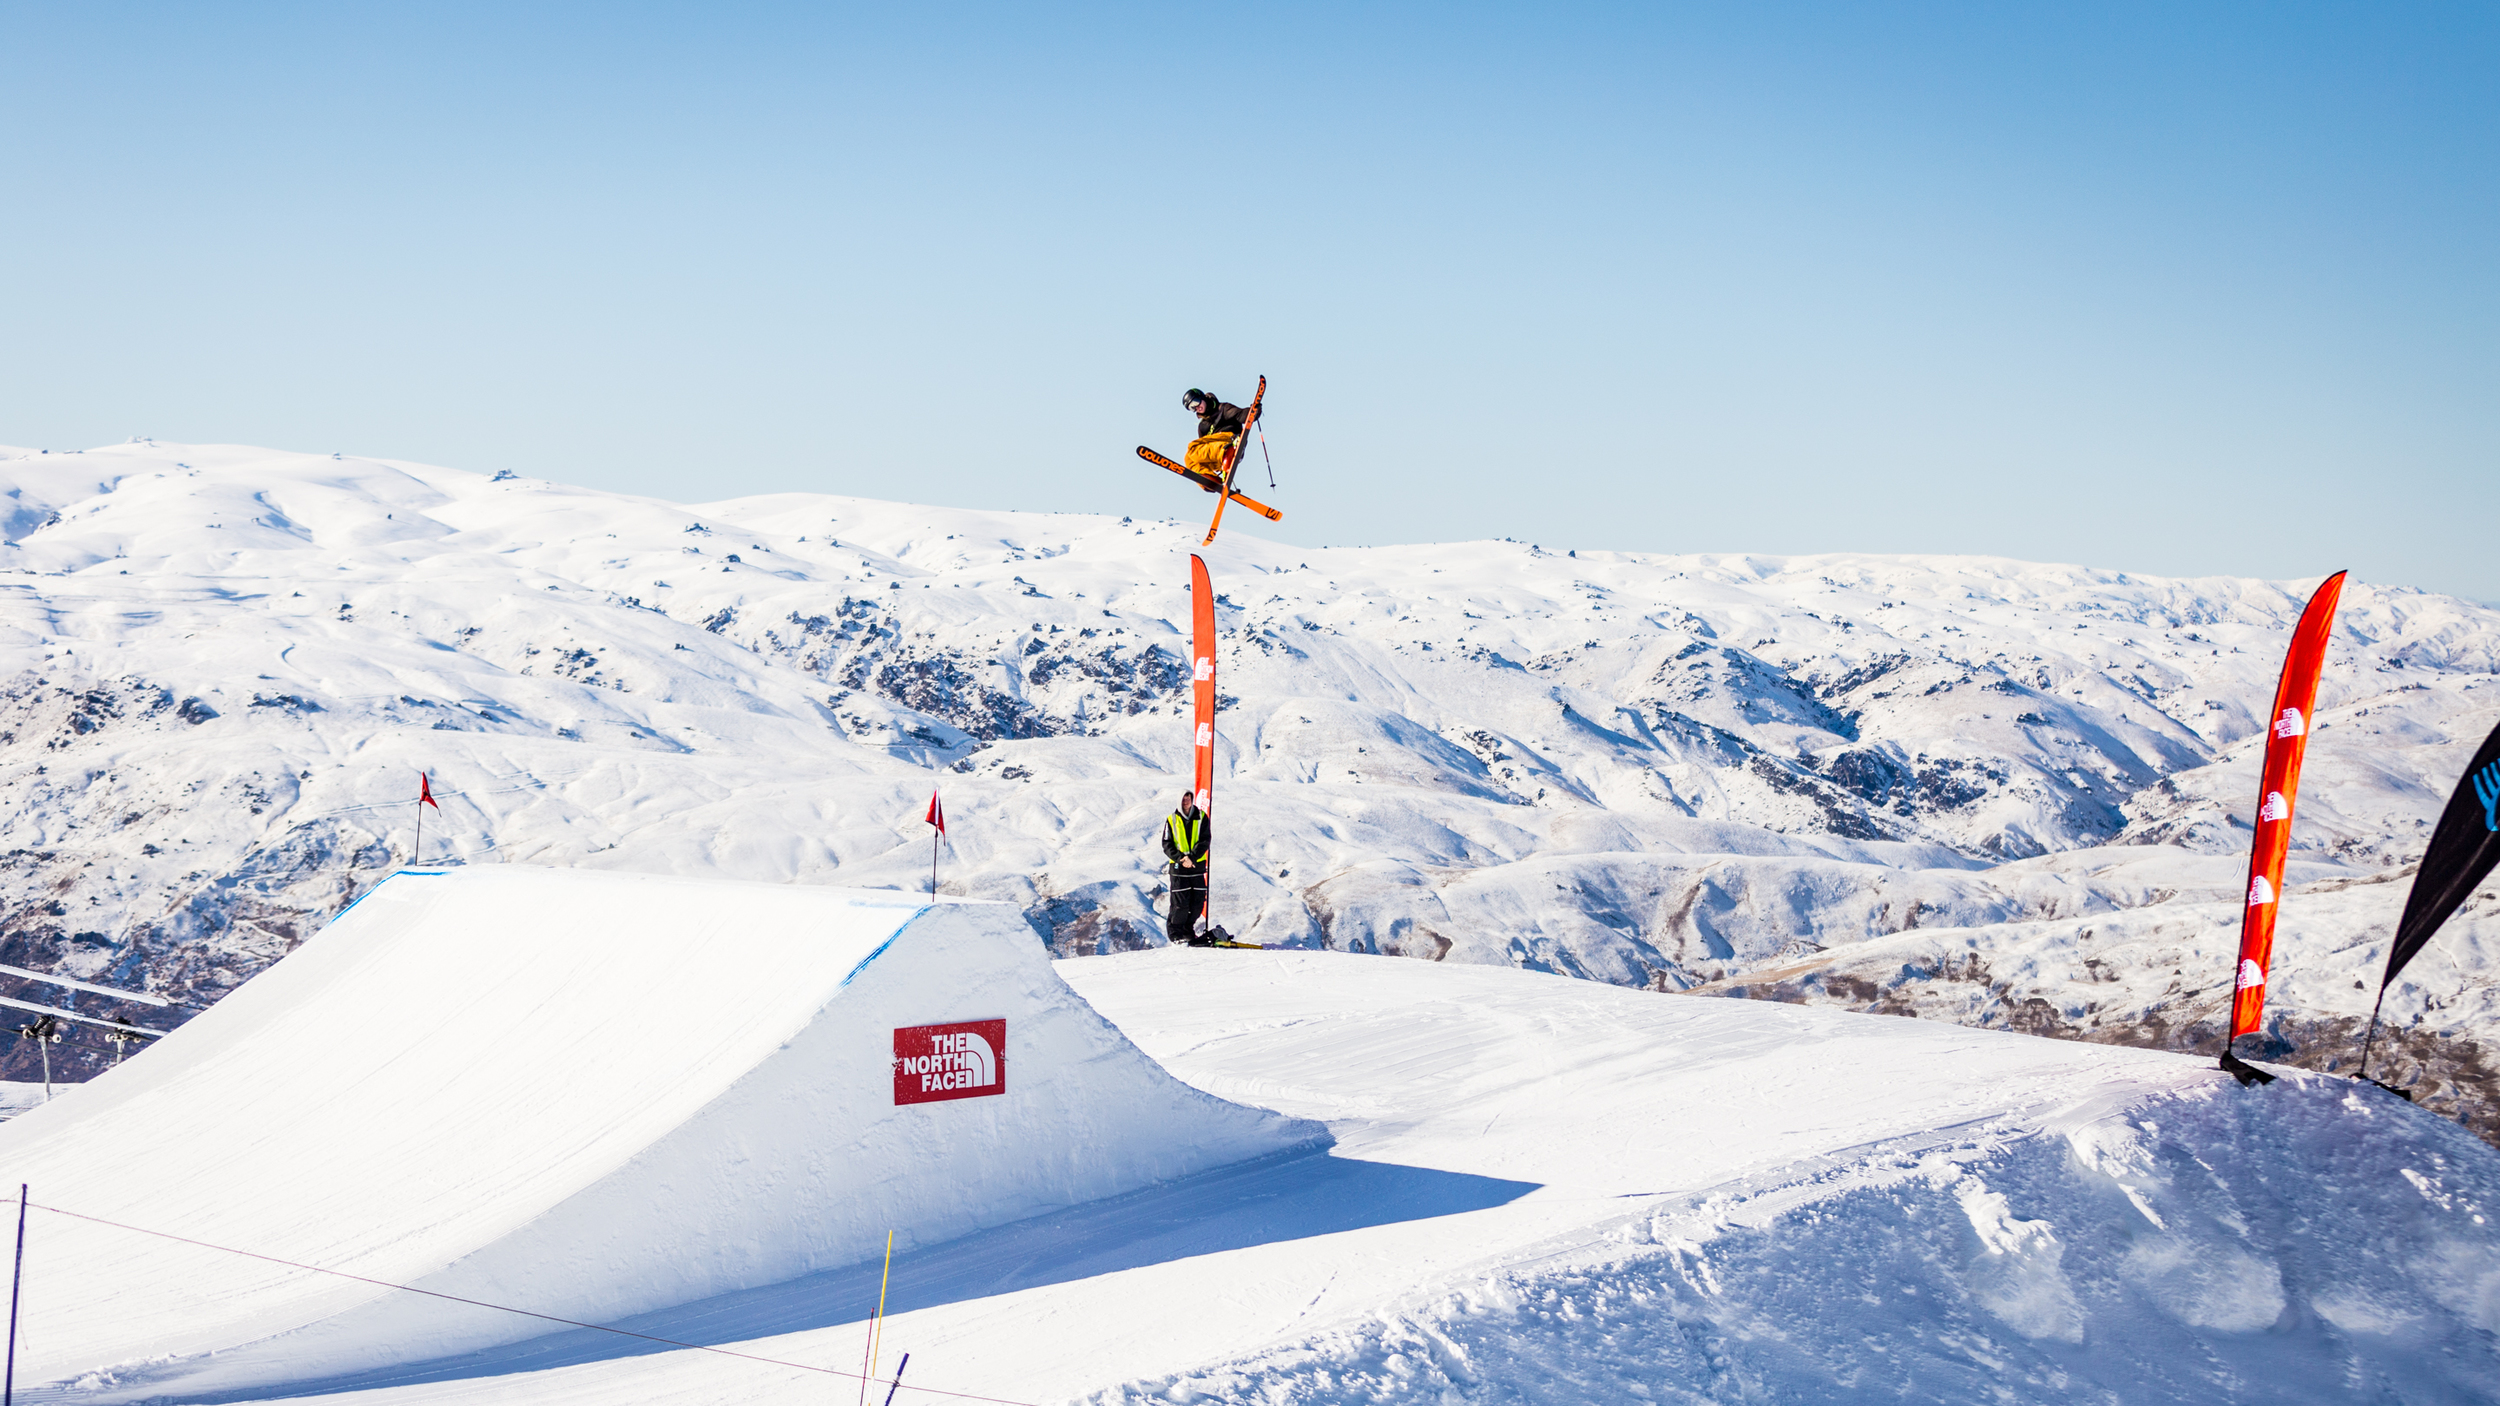 TNF Freeski Open_Slopestyle Finals_James Woods.jpg